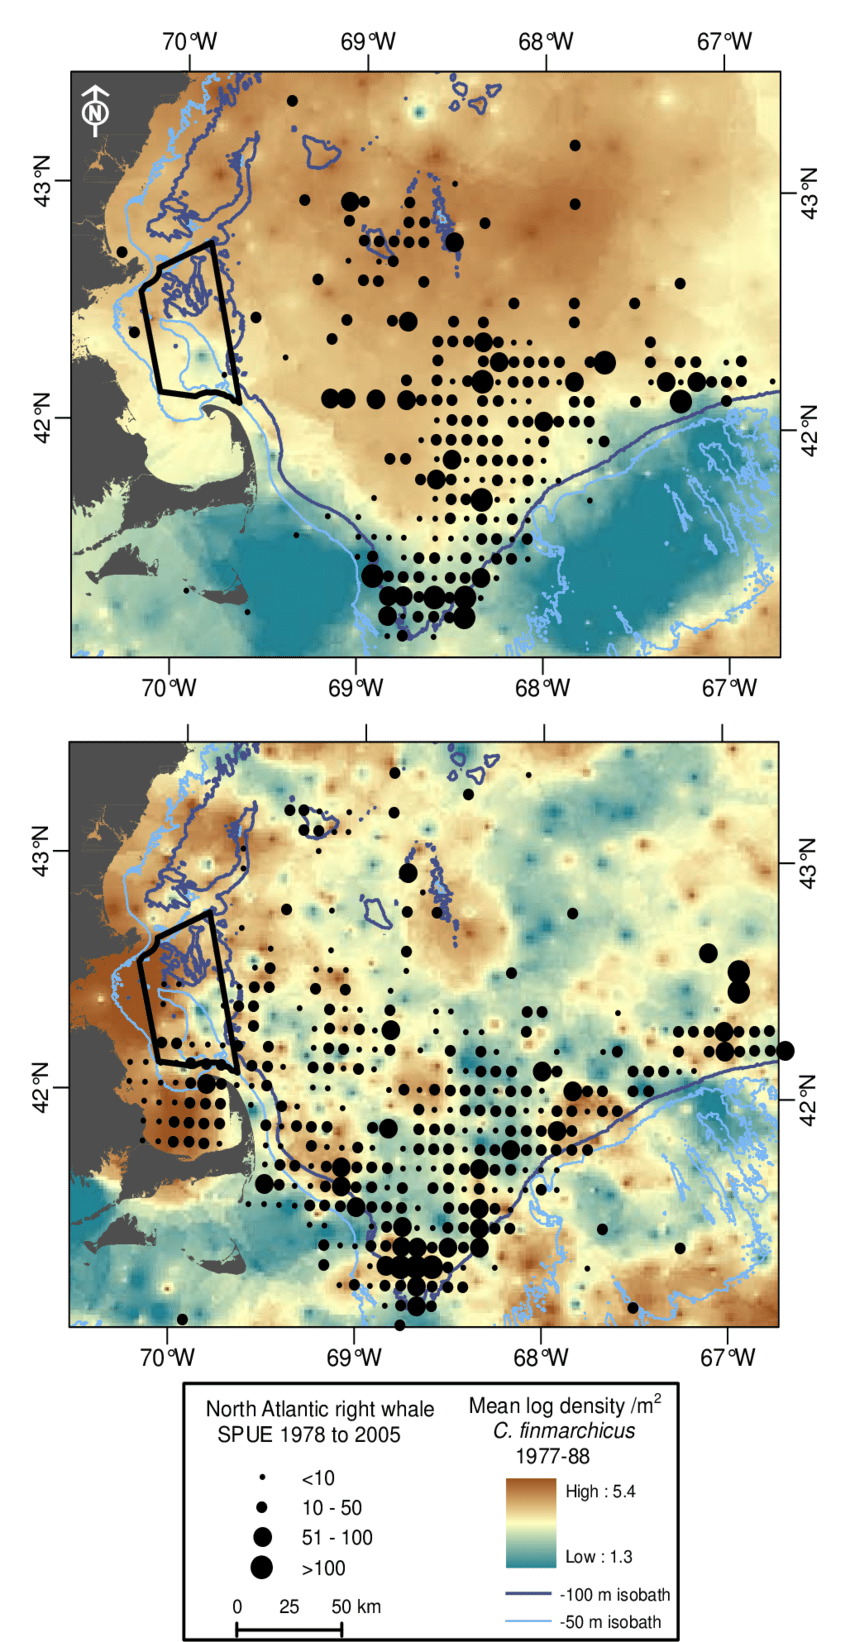 hight resolution of overlay of spatial distribution of north atlantic right whale relative abundance spue